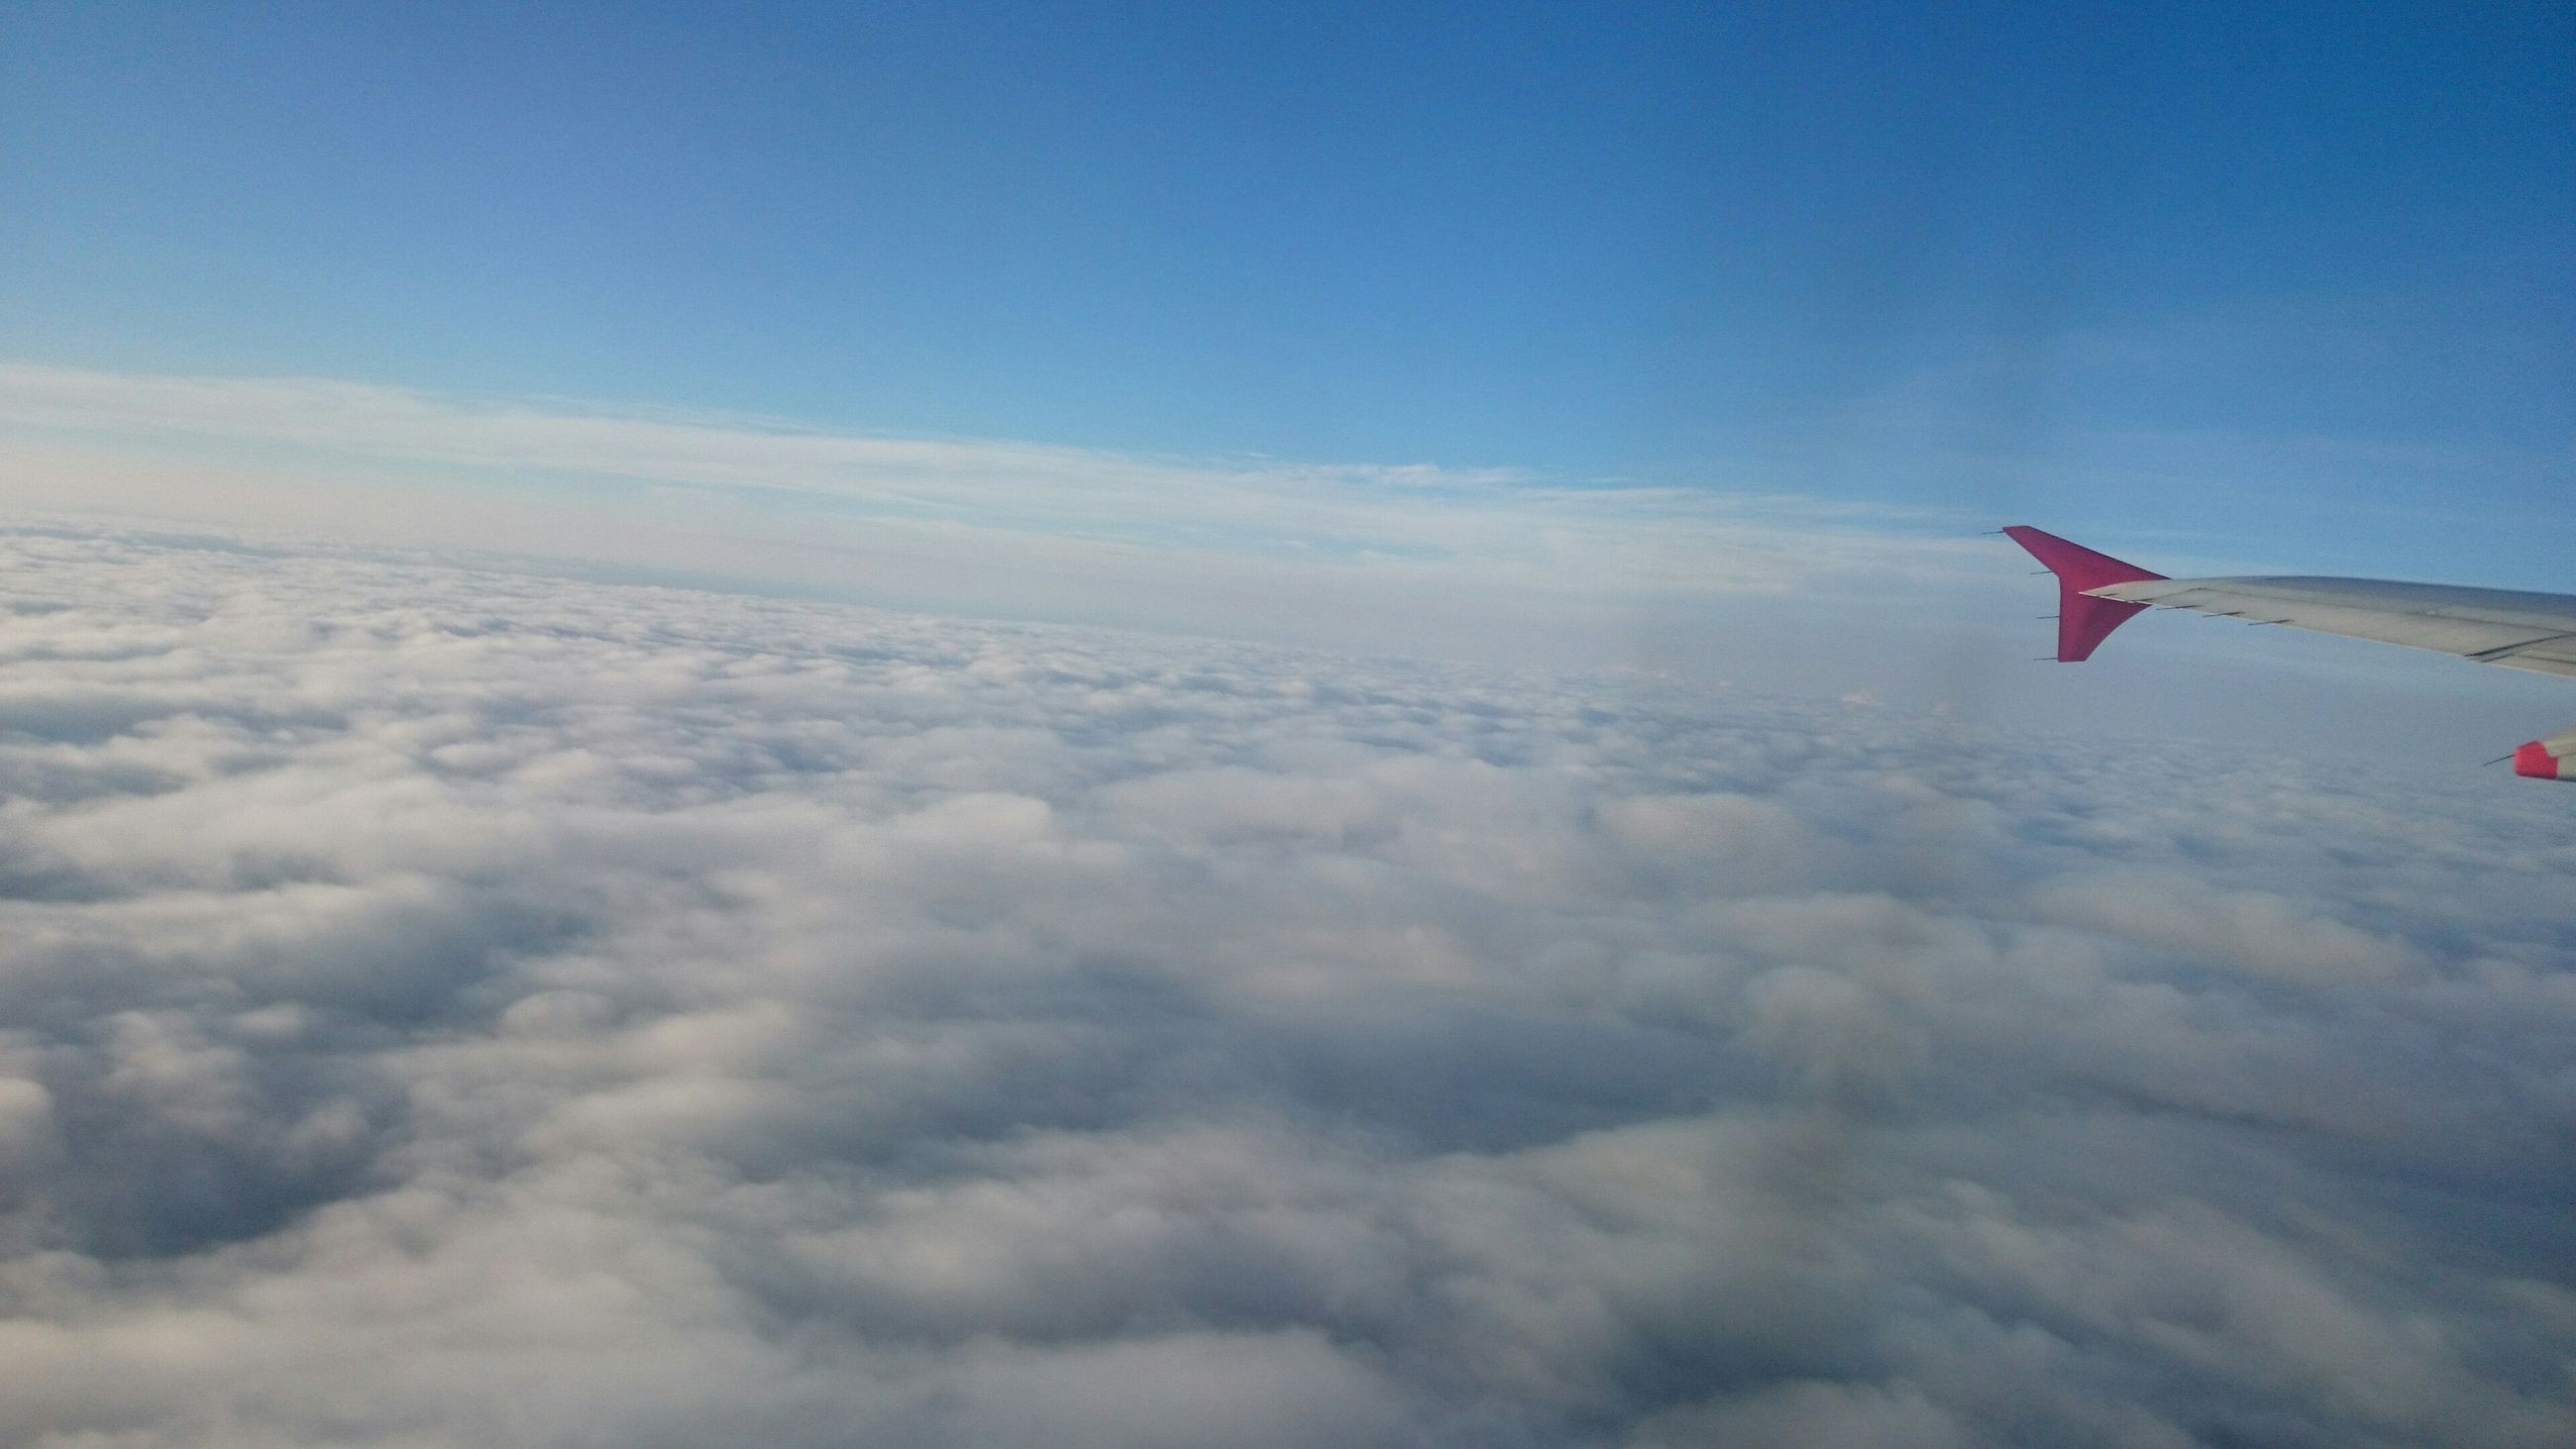 sky, flying, airplane, cloud - sky, blue, air vehicle, beauty in nature, aircraft wing, scenics, nature, cloudscape, transportation, cloud, white color, tranquility, tranquil scene, mid-air, part of, outdoors, day